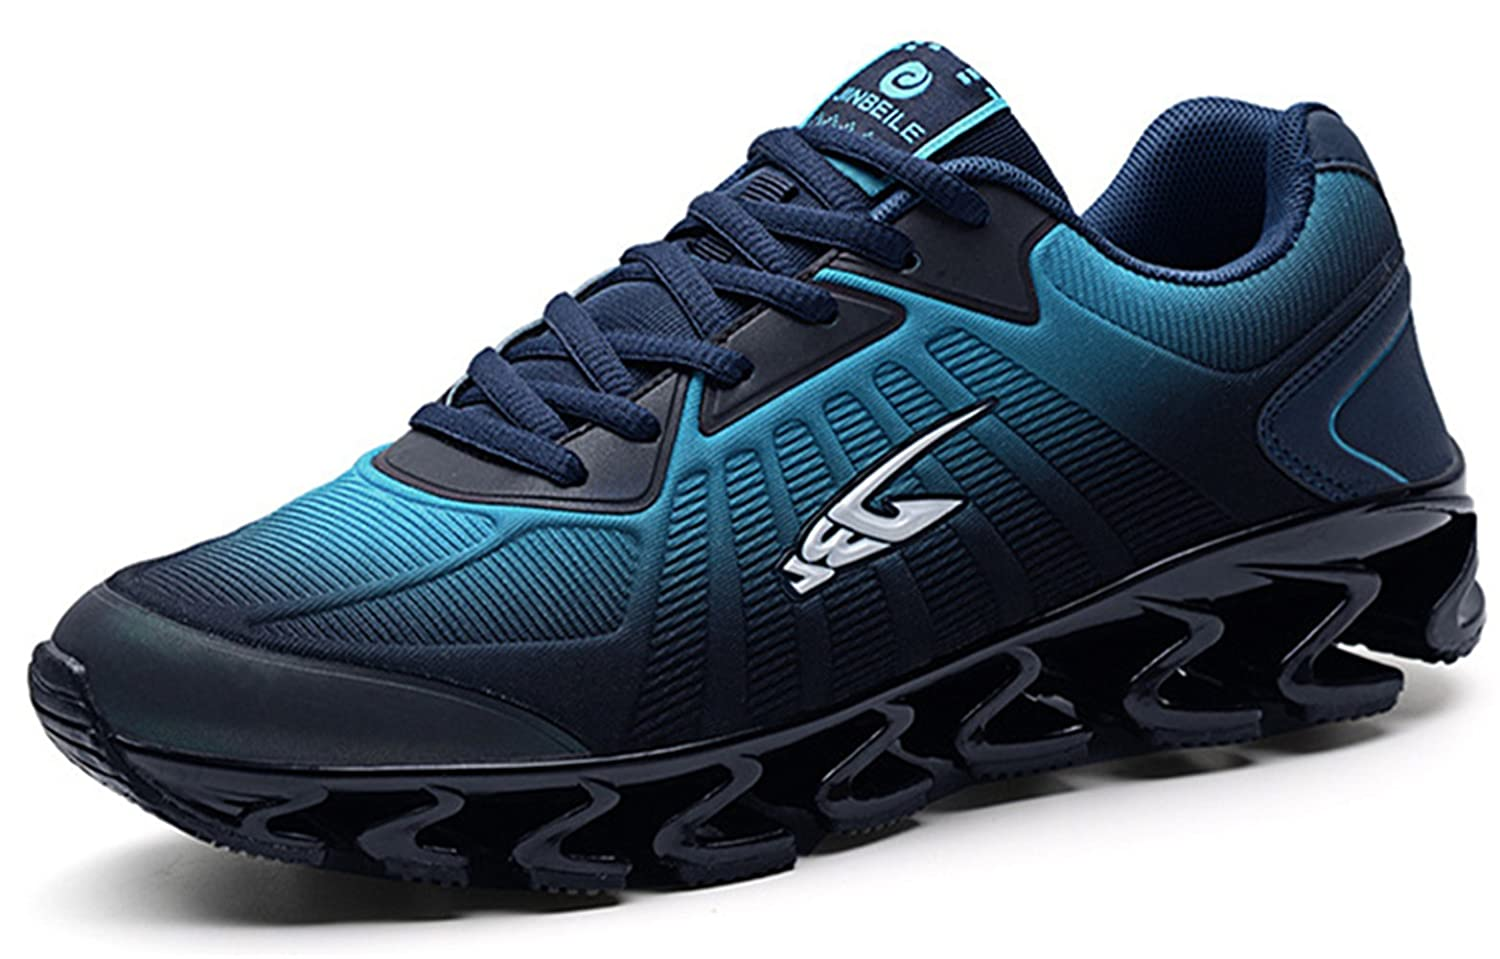 30%OFF K3K New Men's Blade Warrior Sports Shoes Breathable